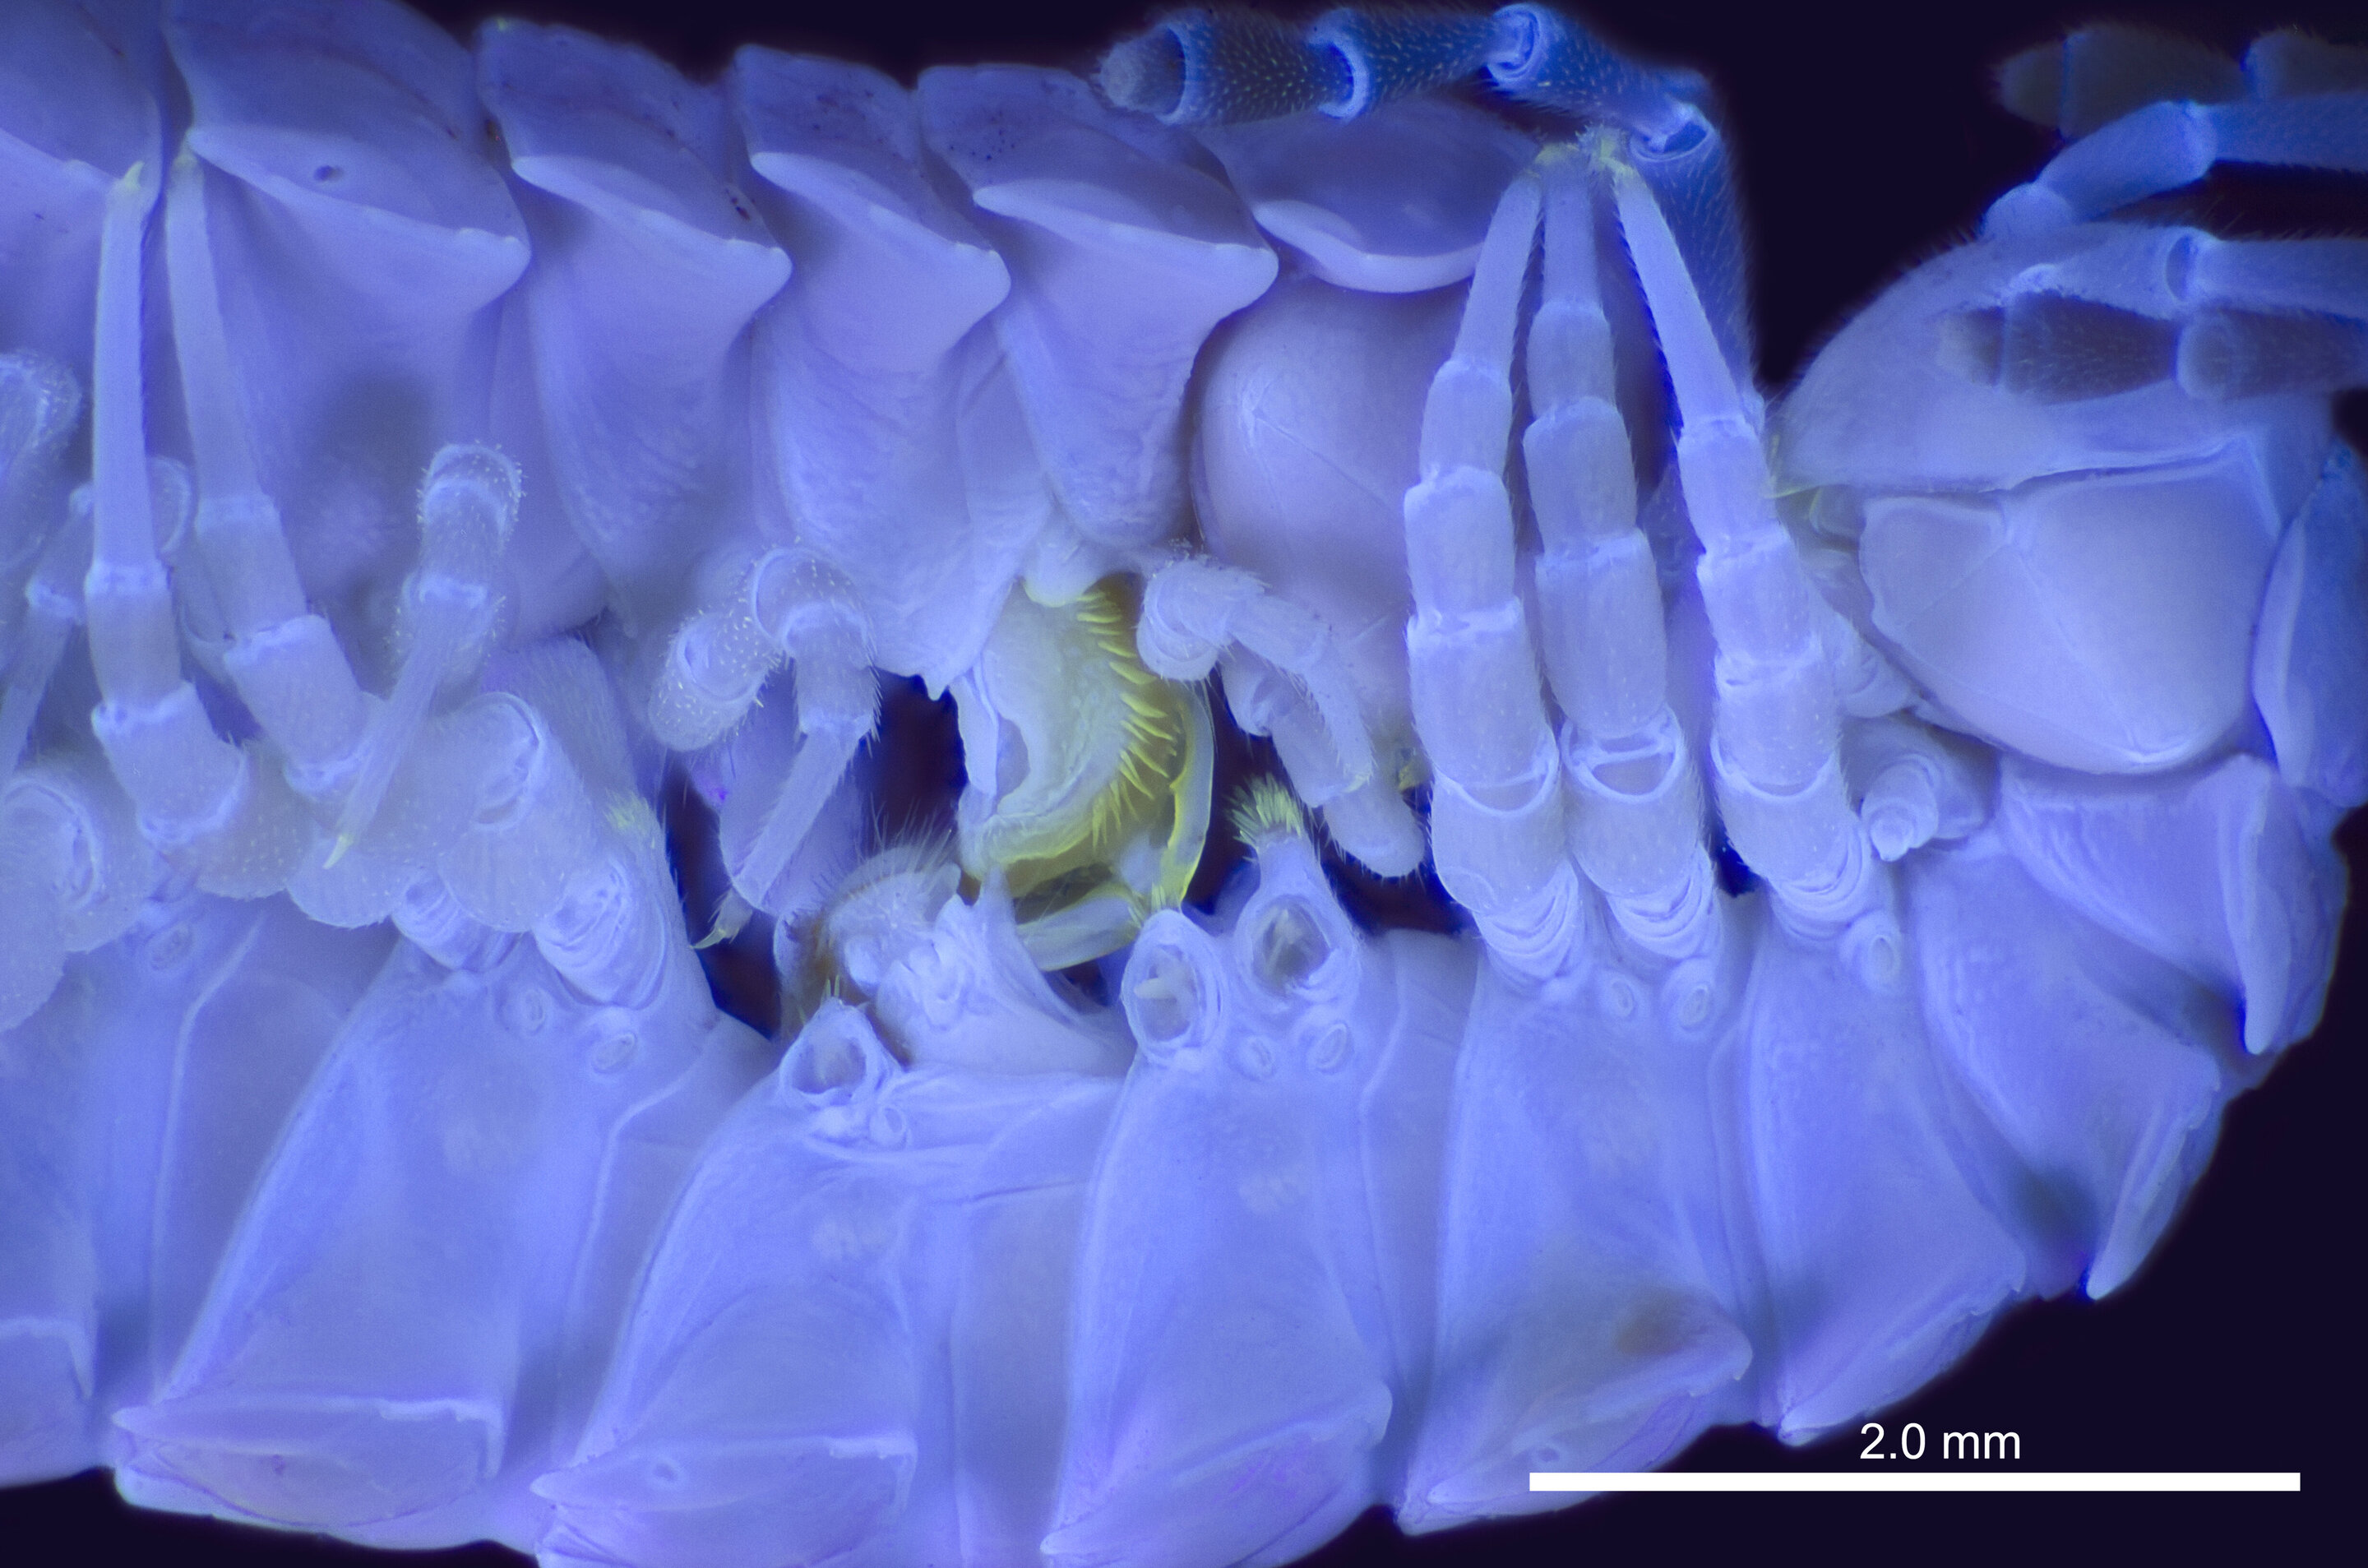 High-tech imaging under UV light shows which parts go where when millipedes mate